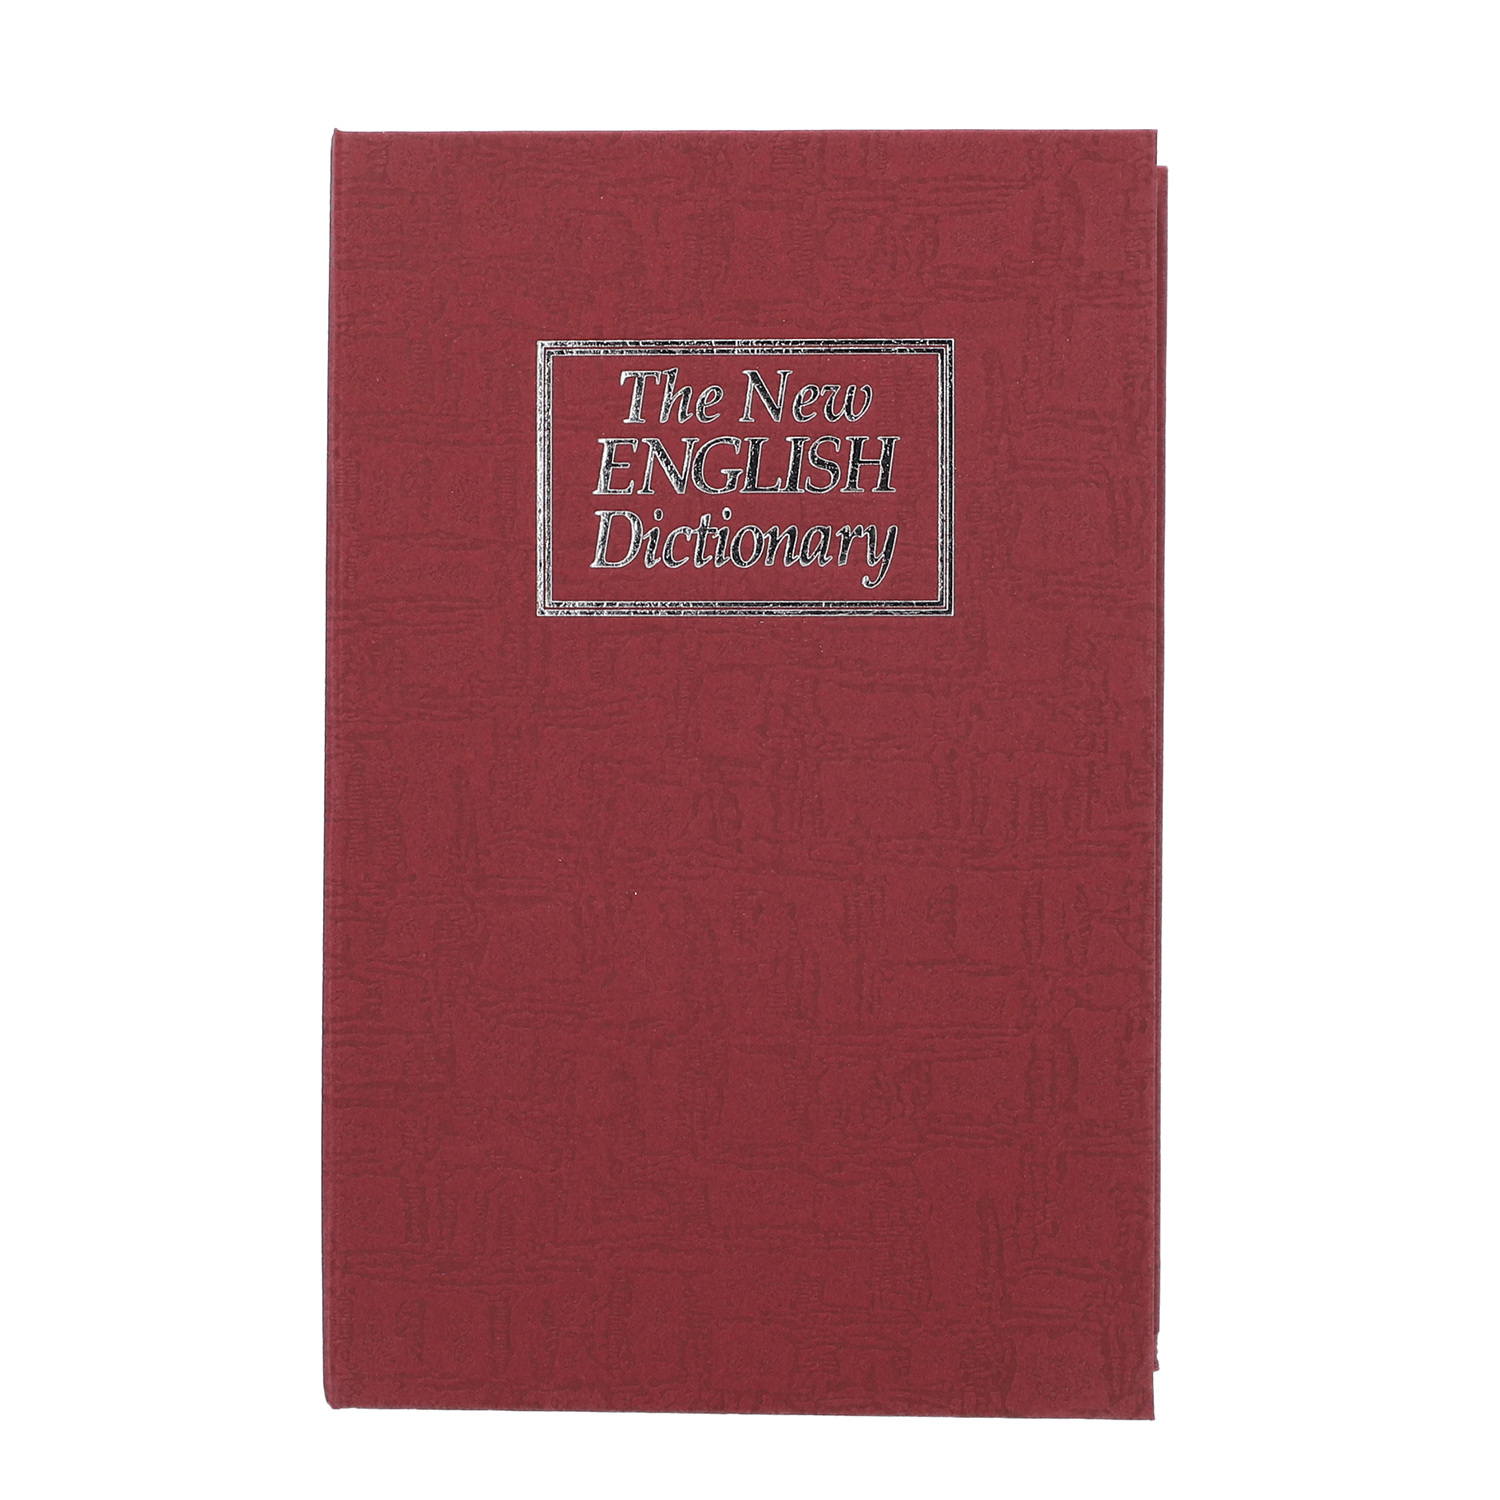 The New English Dictionary Marsala Book Safe (7 08x2 16x4 52 in)